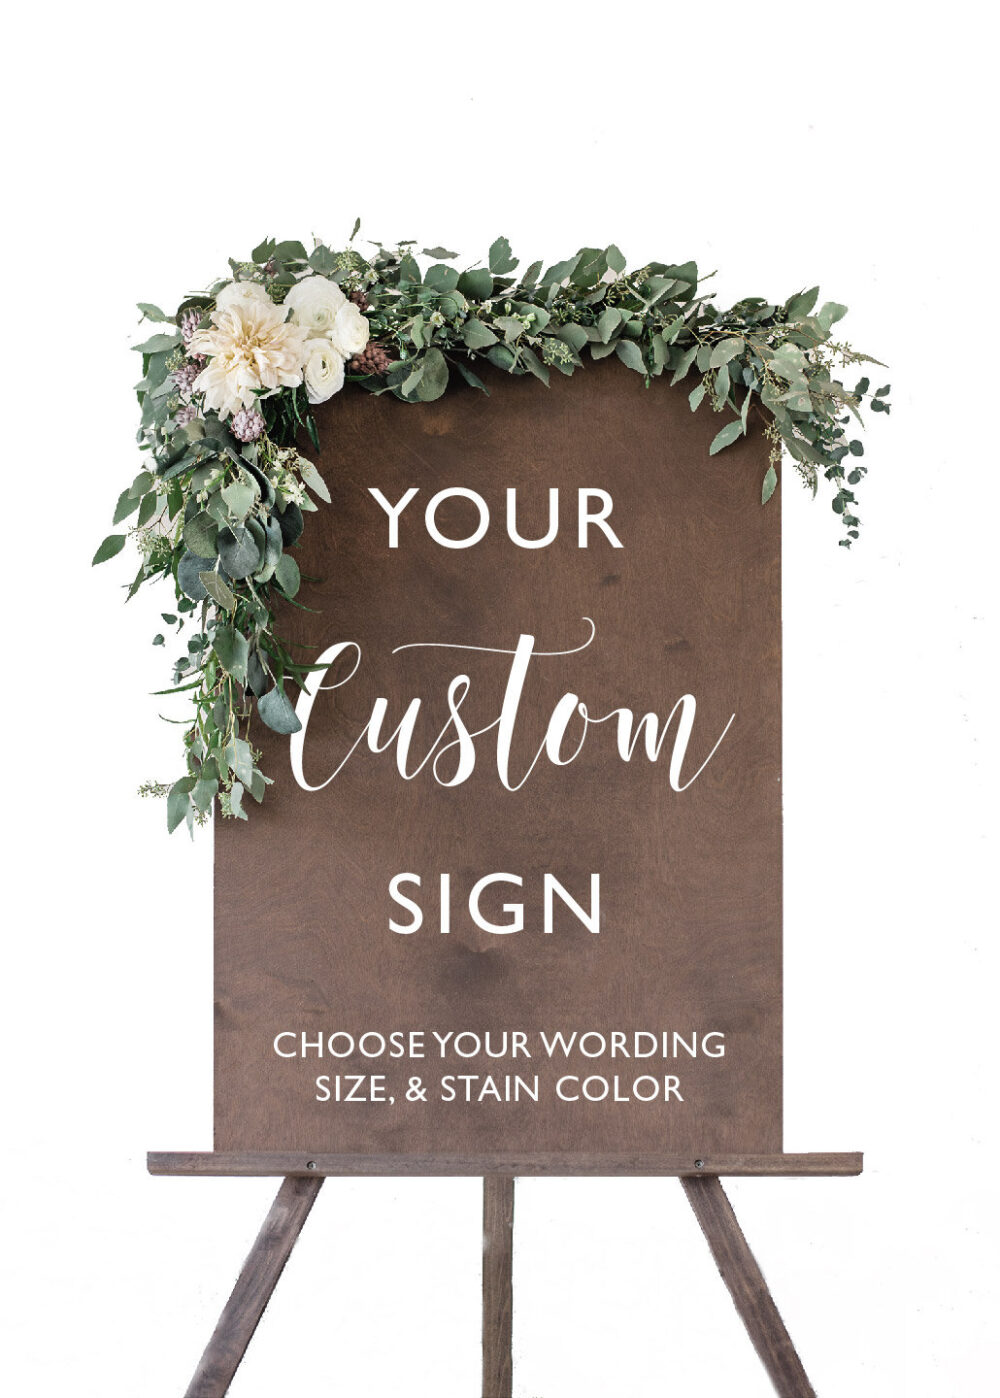 Custom Wedding Welcome Sign   Rustic Signage Wood Signs Decor - Scc-5